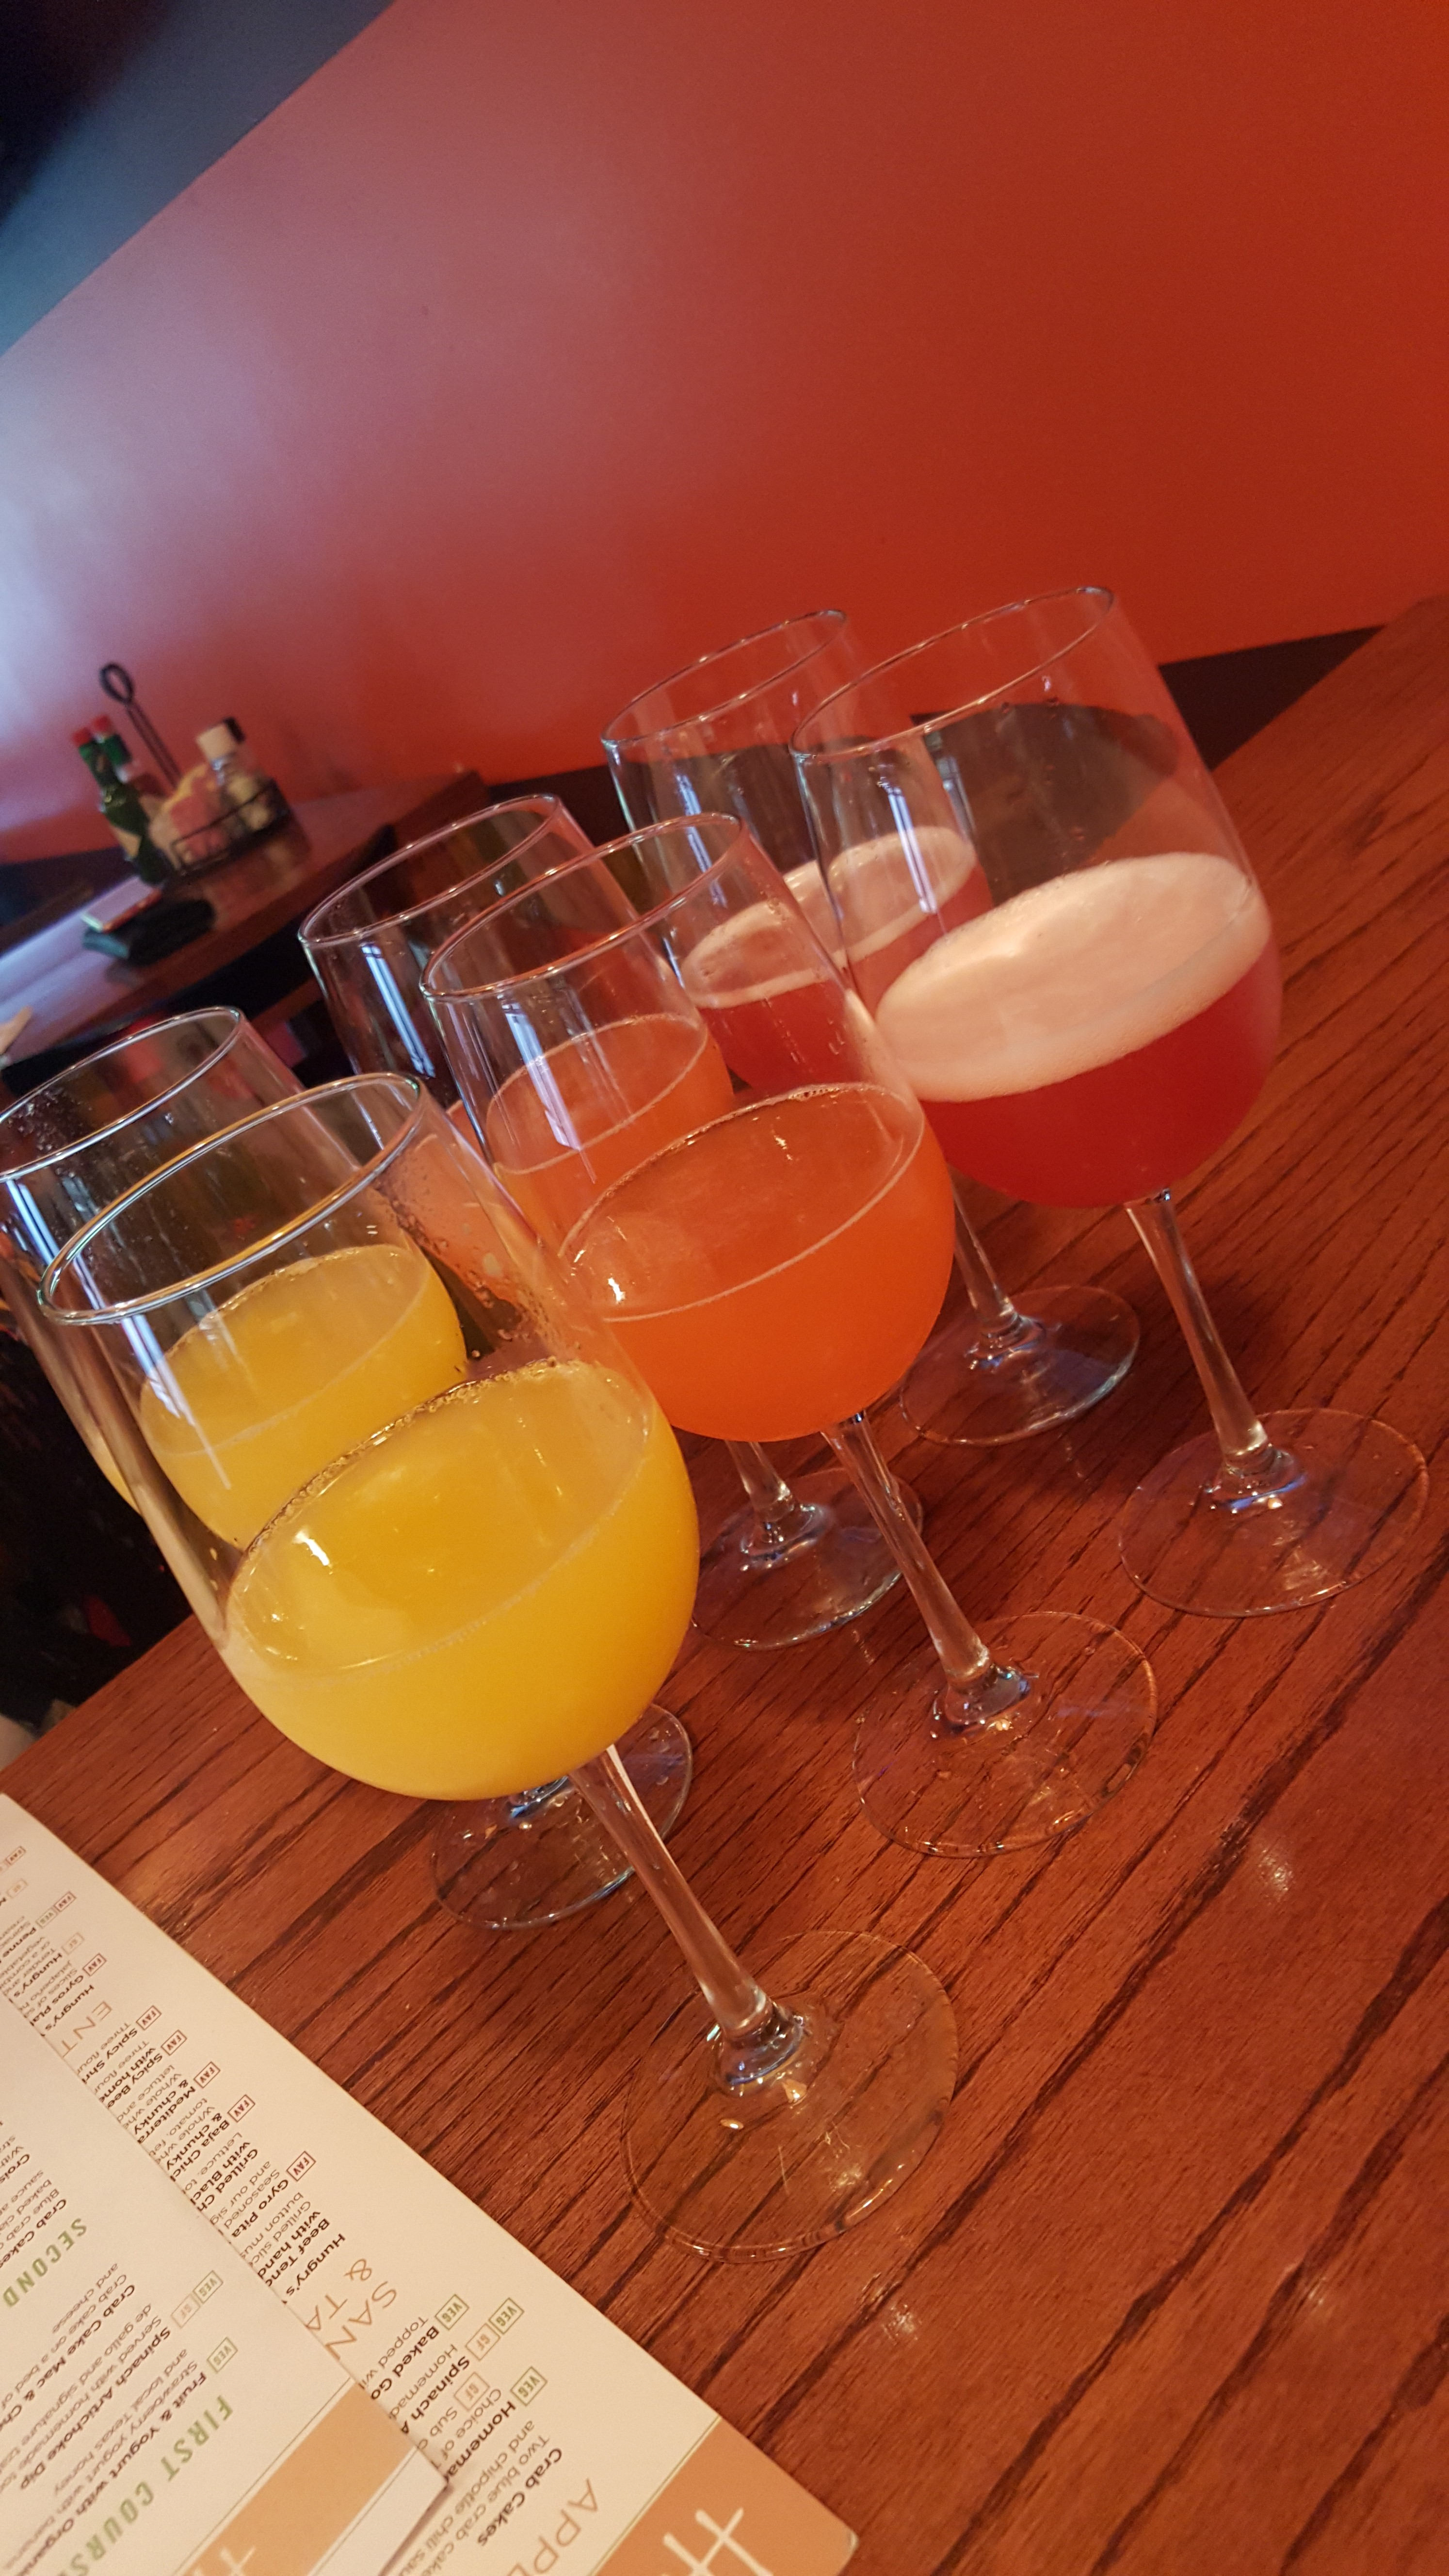 And The Best Part Mimosa Flights Were At A Discount Three For 9 You Could Choose Orange Raspberry Or Strawberry So Of Course We Had All Three